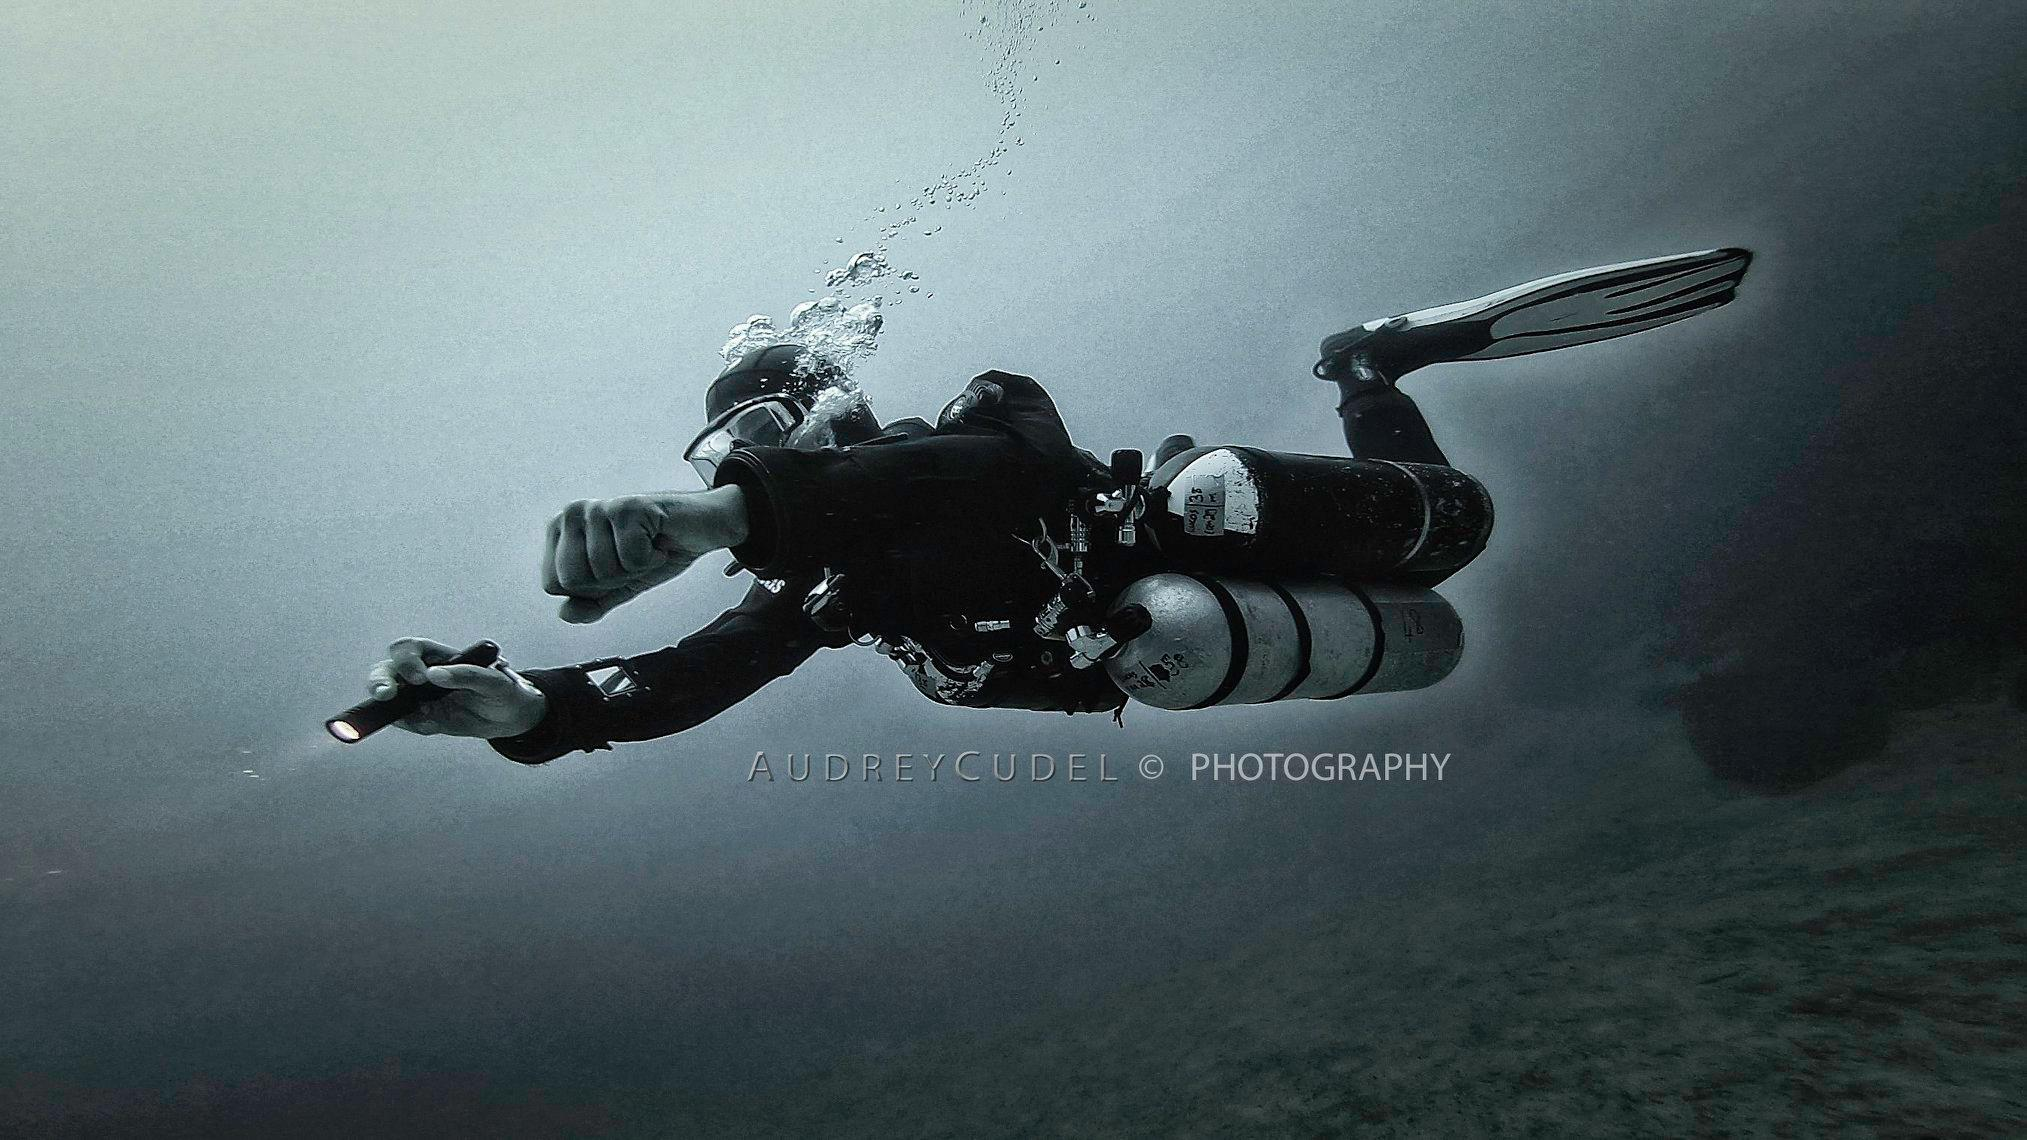 - Lucas (Dive Master) SM & Tech SM Courses, 2018'Audrey really elevated my sidemount and tech diving skill-set to whole new level. Her elite training, patience, honesty, no-corner-cutting, and incredible level of experience (I could listen to her cave stories for hours) combined to accelerate me rapidly and confidently through the tech diving wormhole into the darkside. On top of being a diving guru, she is just about the most like-able person you will ever meet. I could never recommend her enough!'